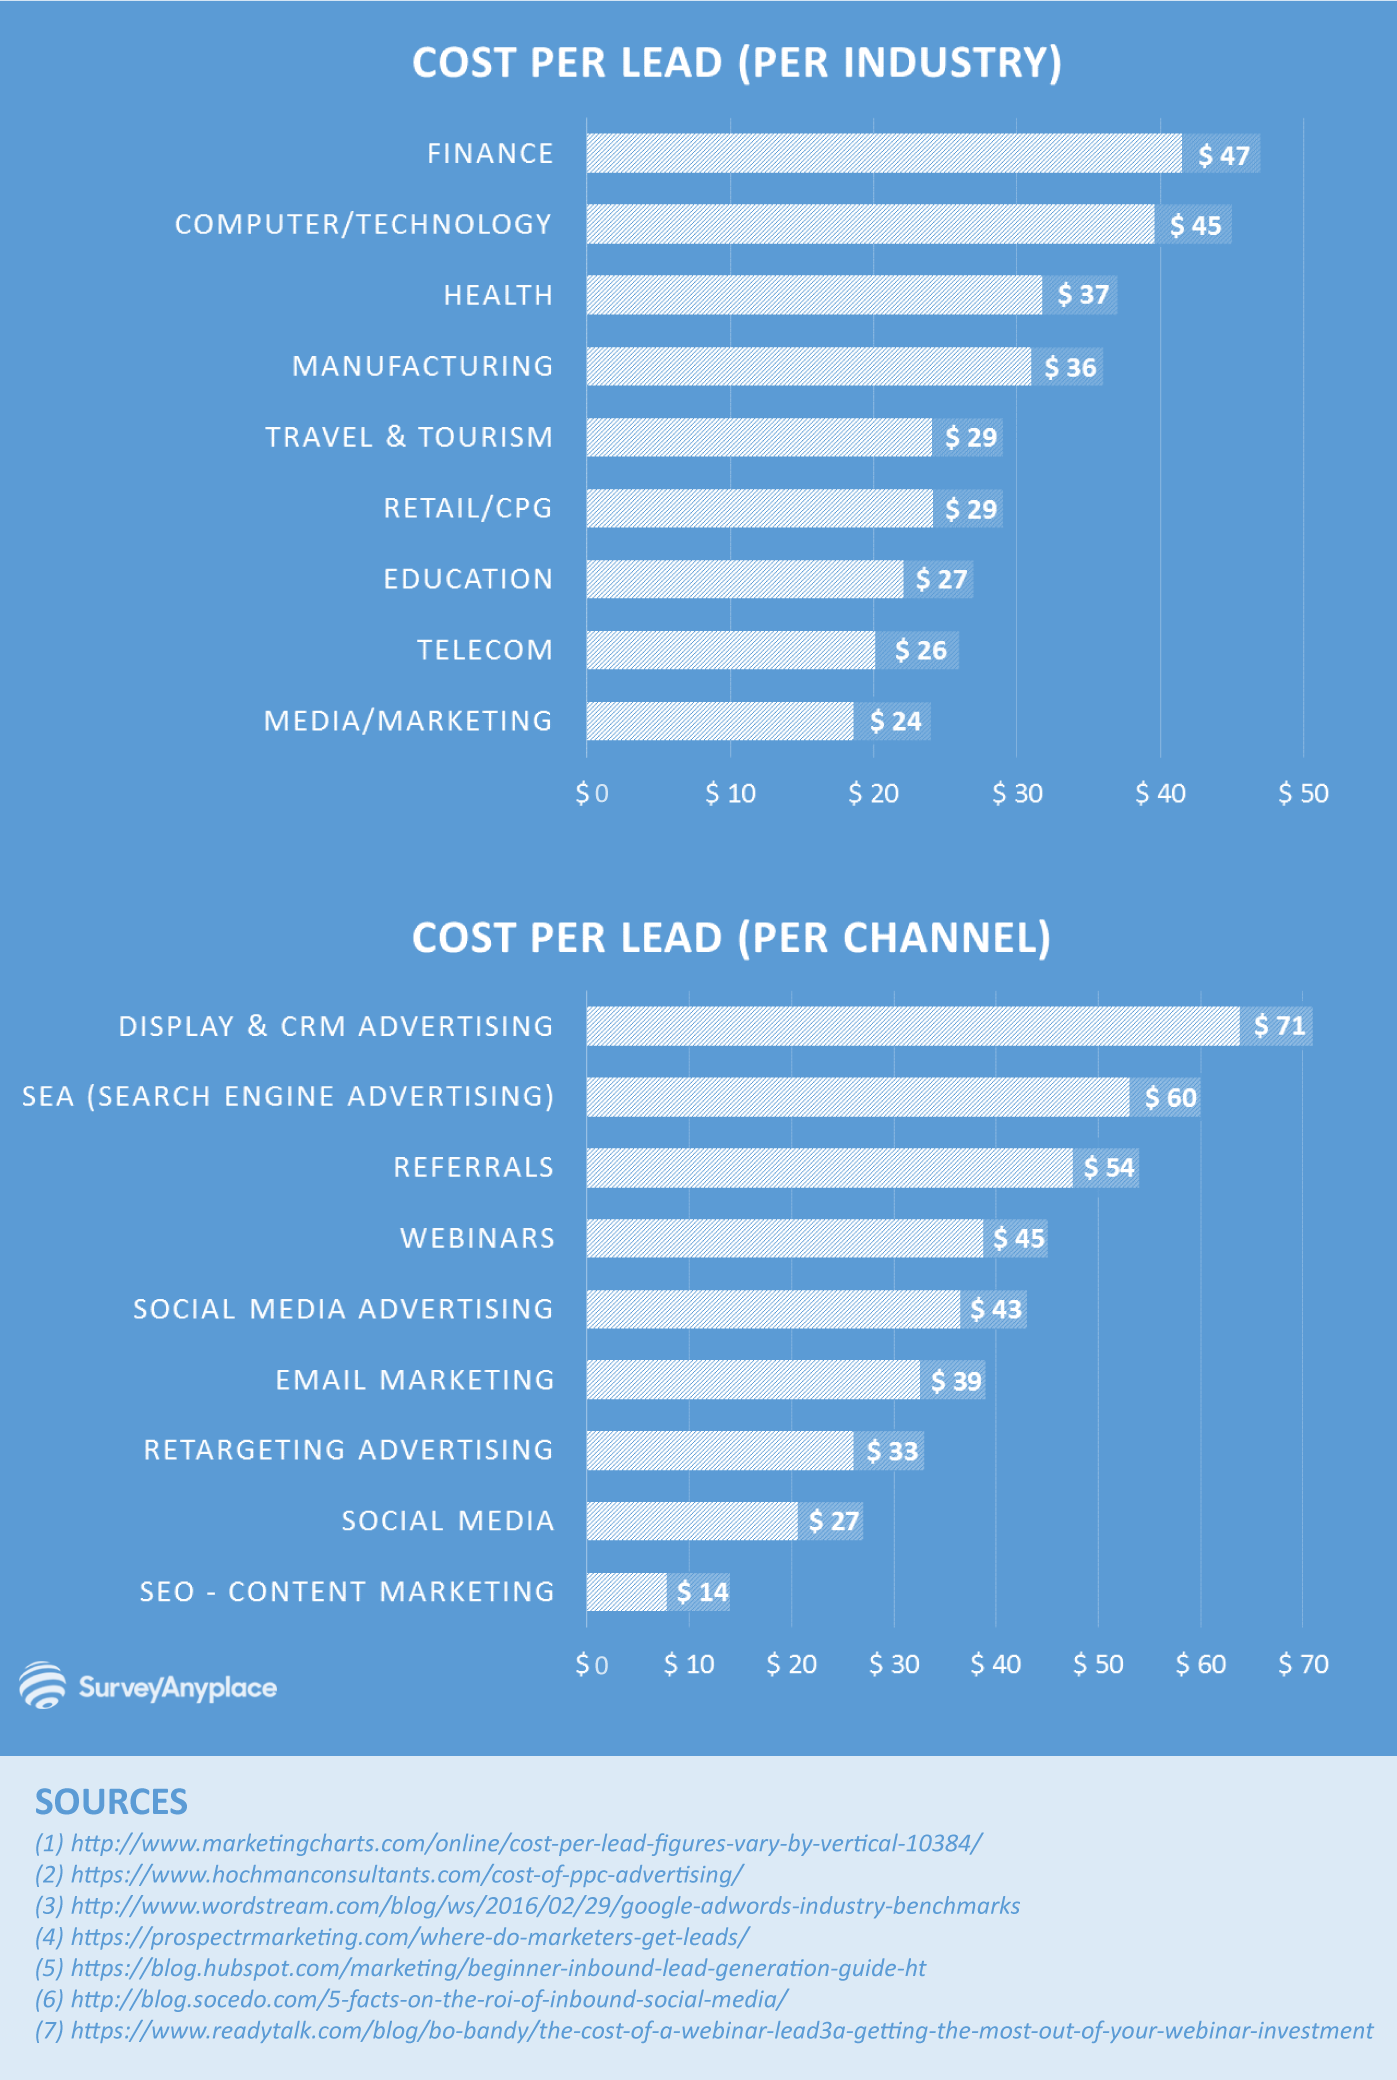 (Image 1A)Industry Averages according to  https://surveyanyplace.com/average-cost-per-lead-by-industry/